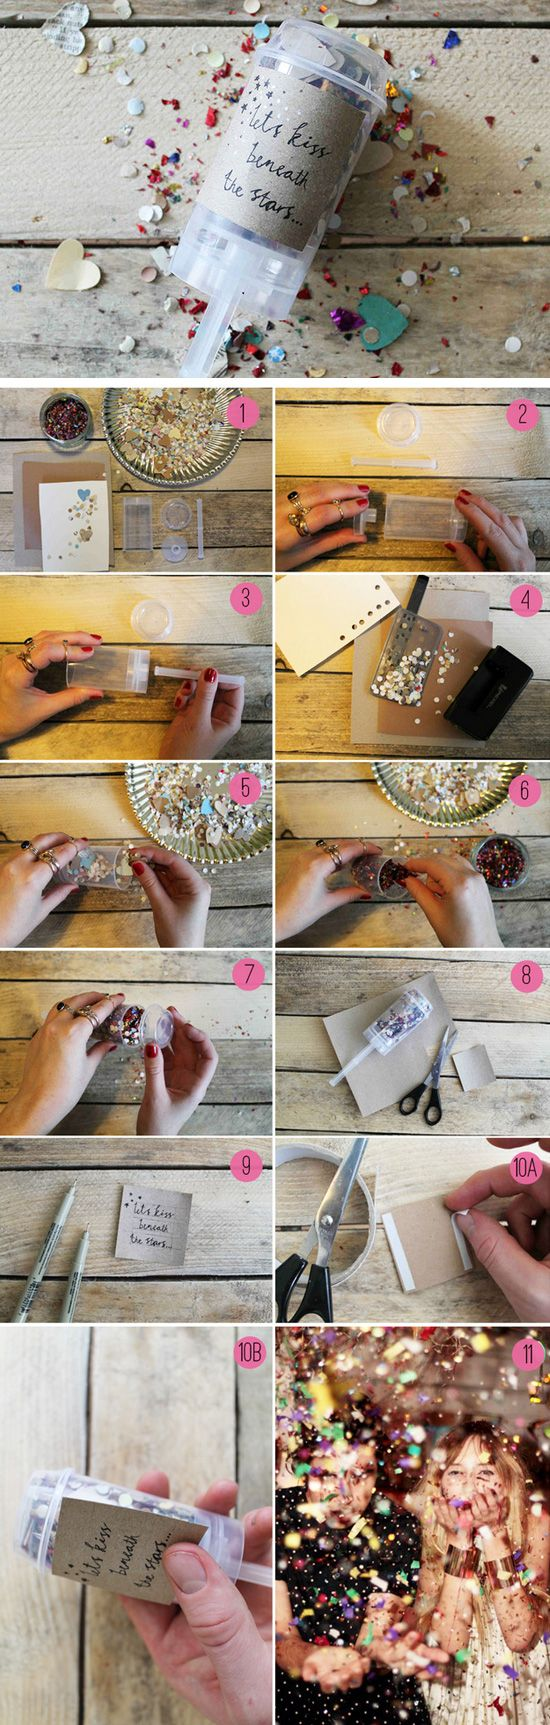 DIY Confetti Pops | Click Pic for 24 DIY Spring Wedding Ideas on a Budget | DIY Spring Wedding Decorations on a Budget